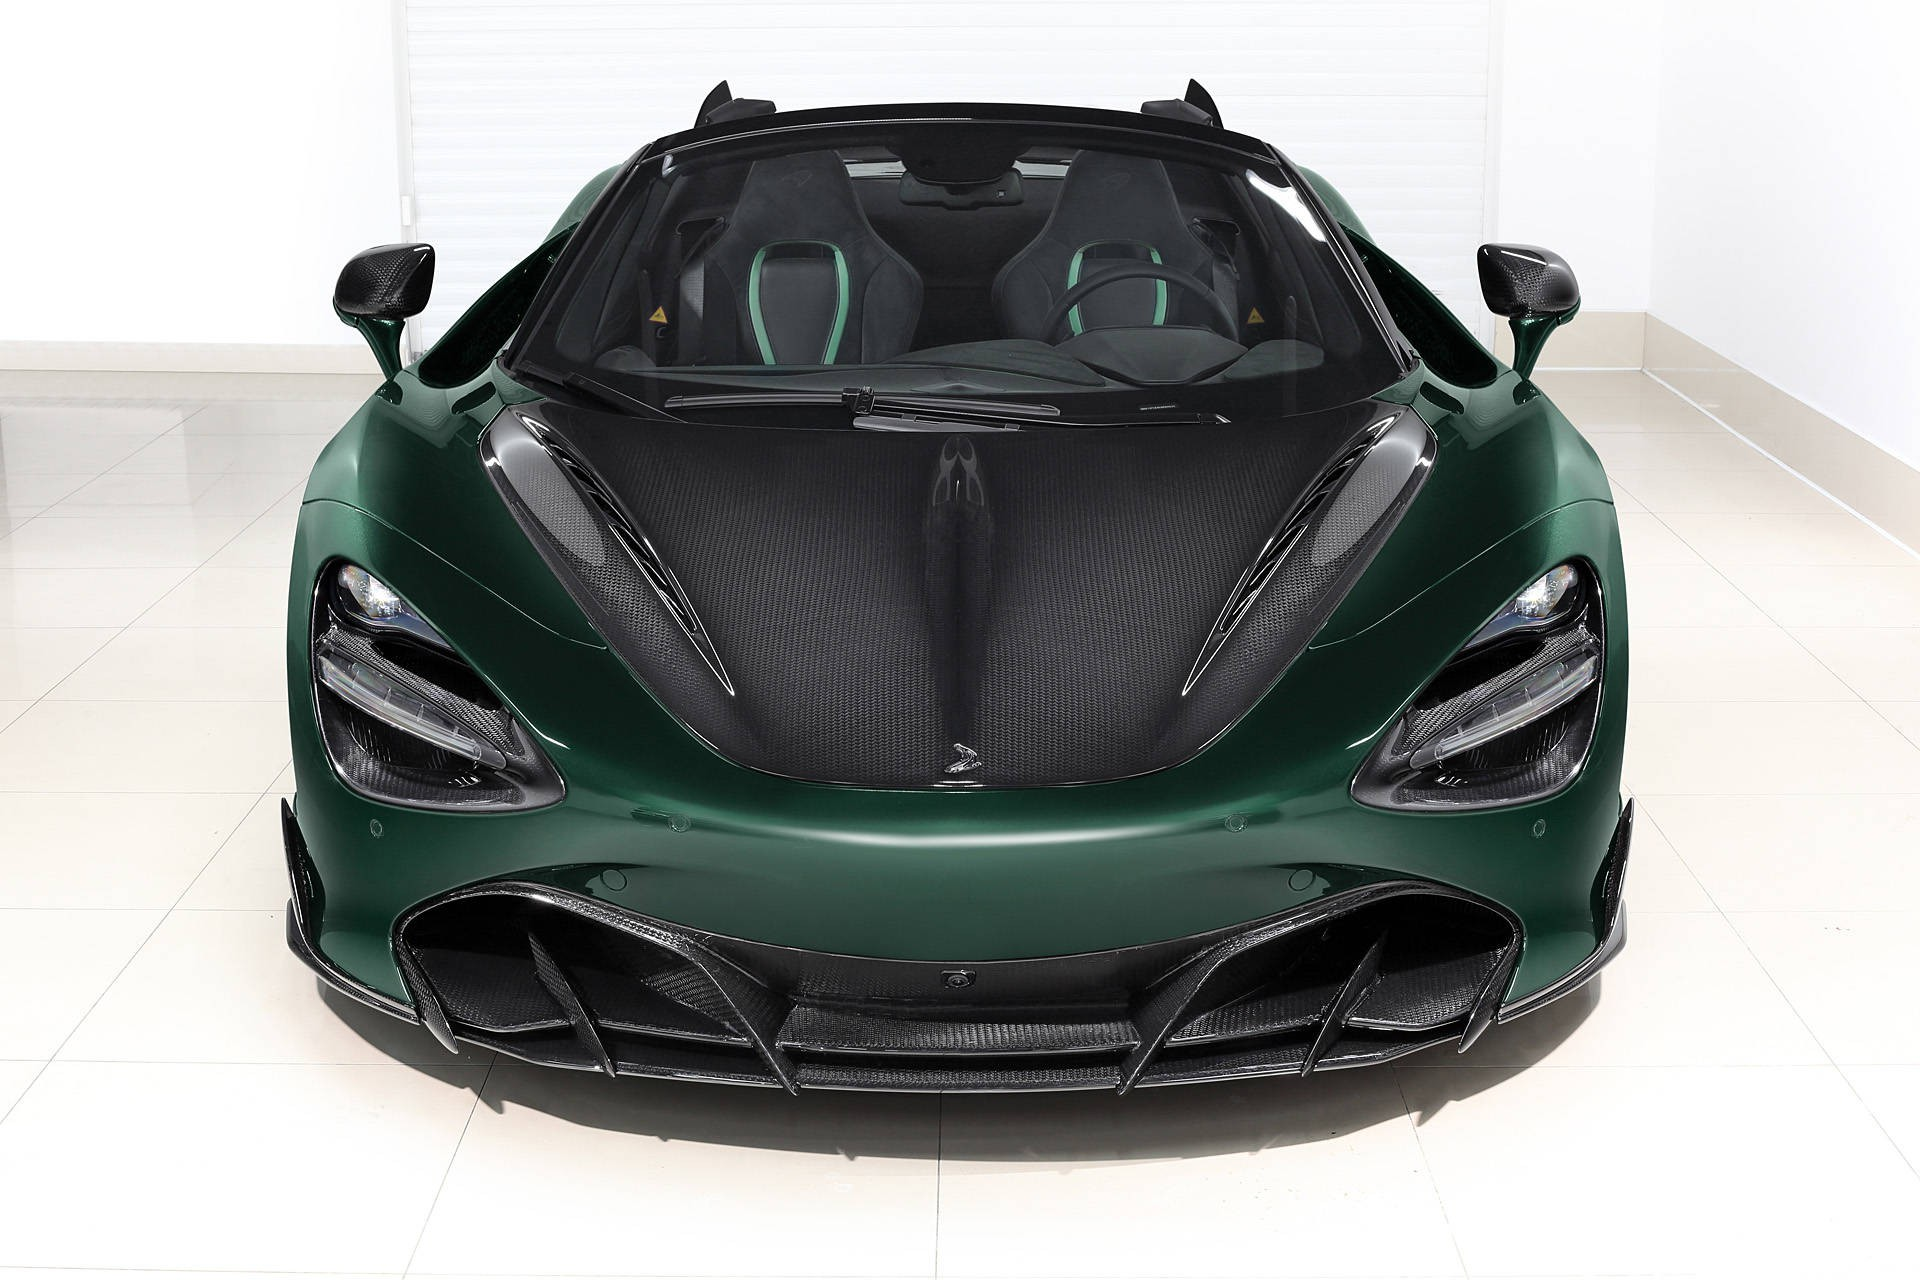 McLaren-720S-Spider-Fury-by-TopCar-for-sale-5